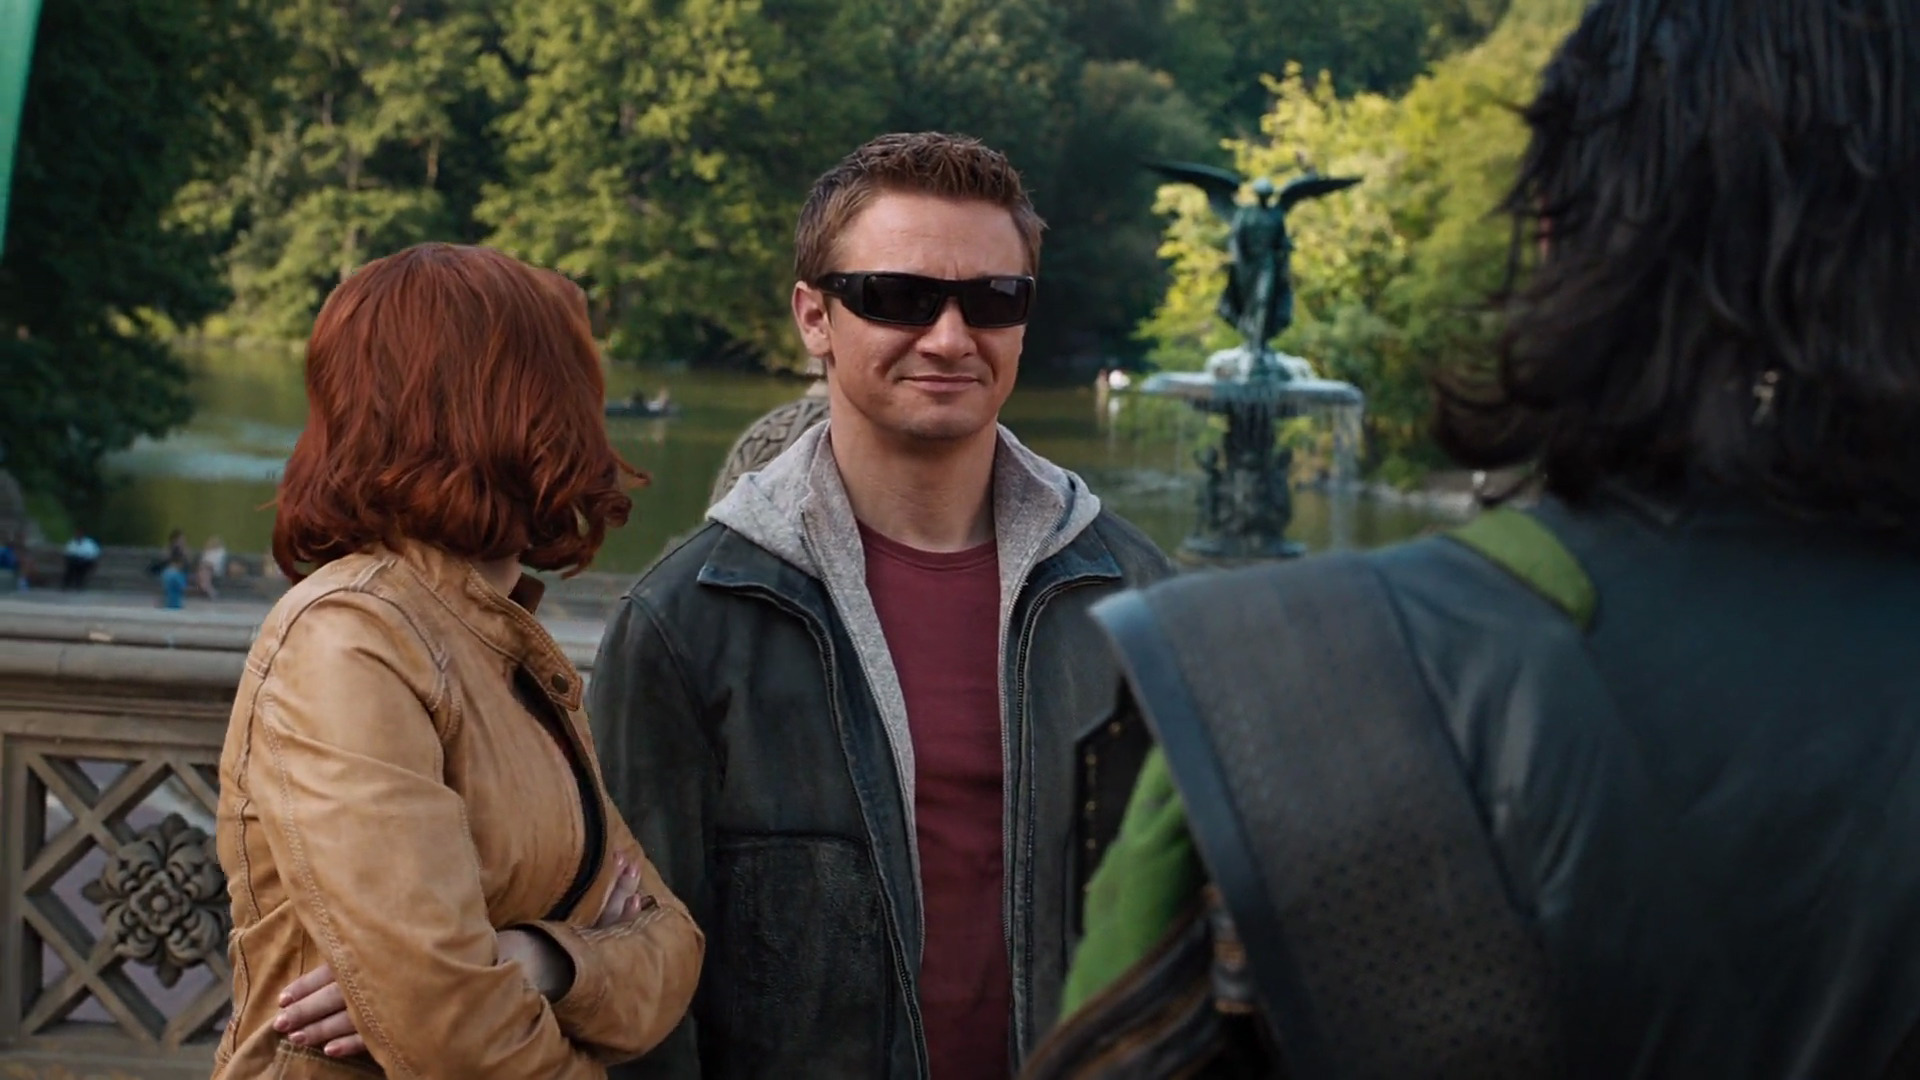 Captain America is  supposed  to be dressed like a dork. What's this guy's excuse?